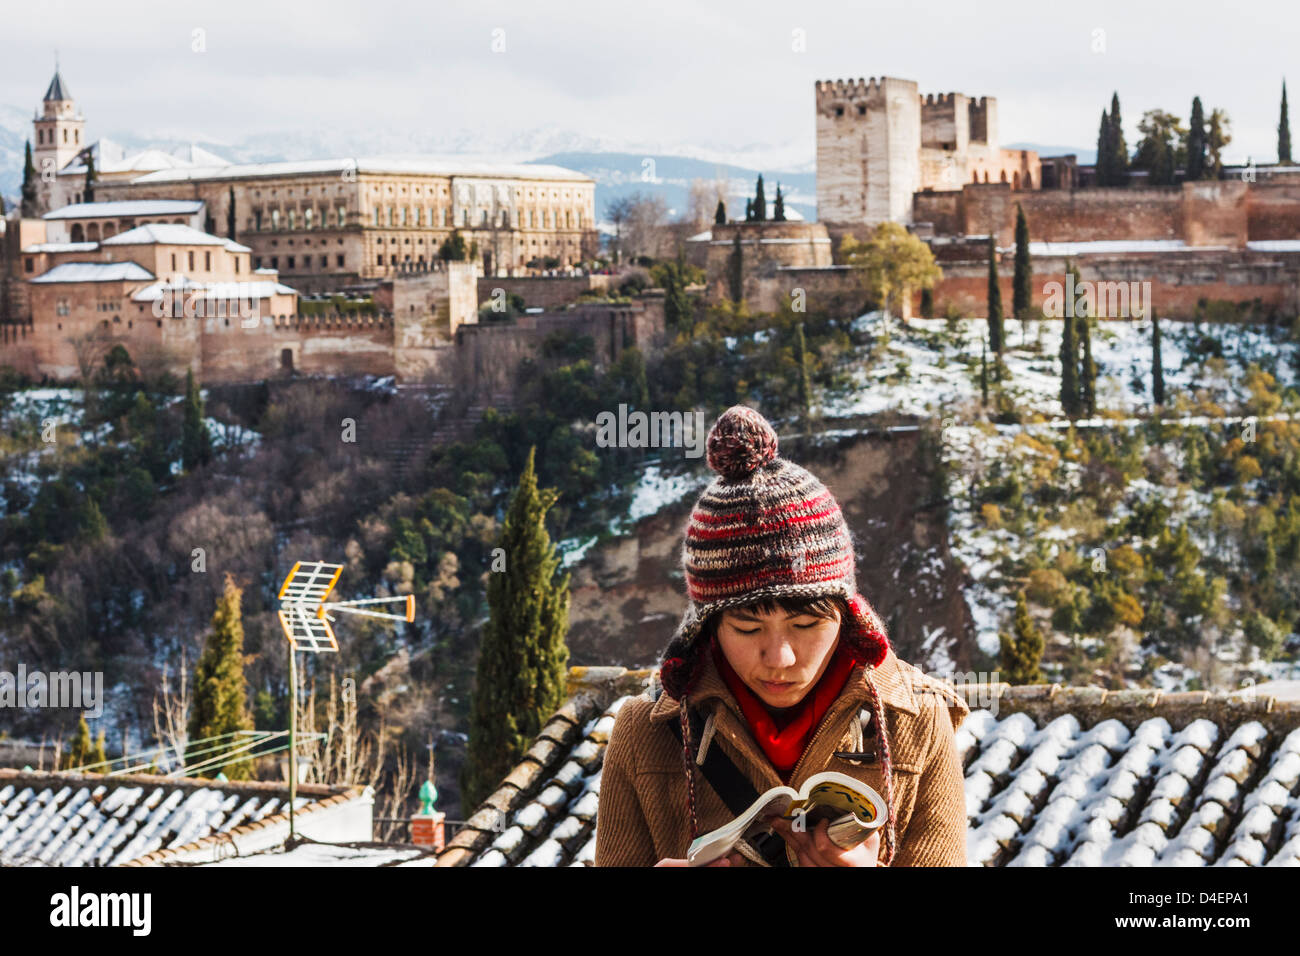 Female Japanese tourist reading a guidebook with snowcapped Alhambra palace in background. Granada, Spain - Stock Image